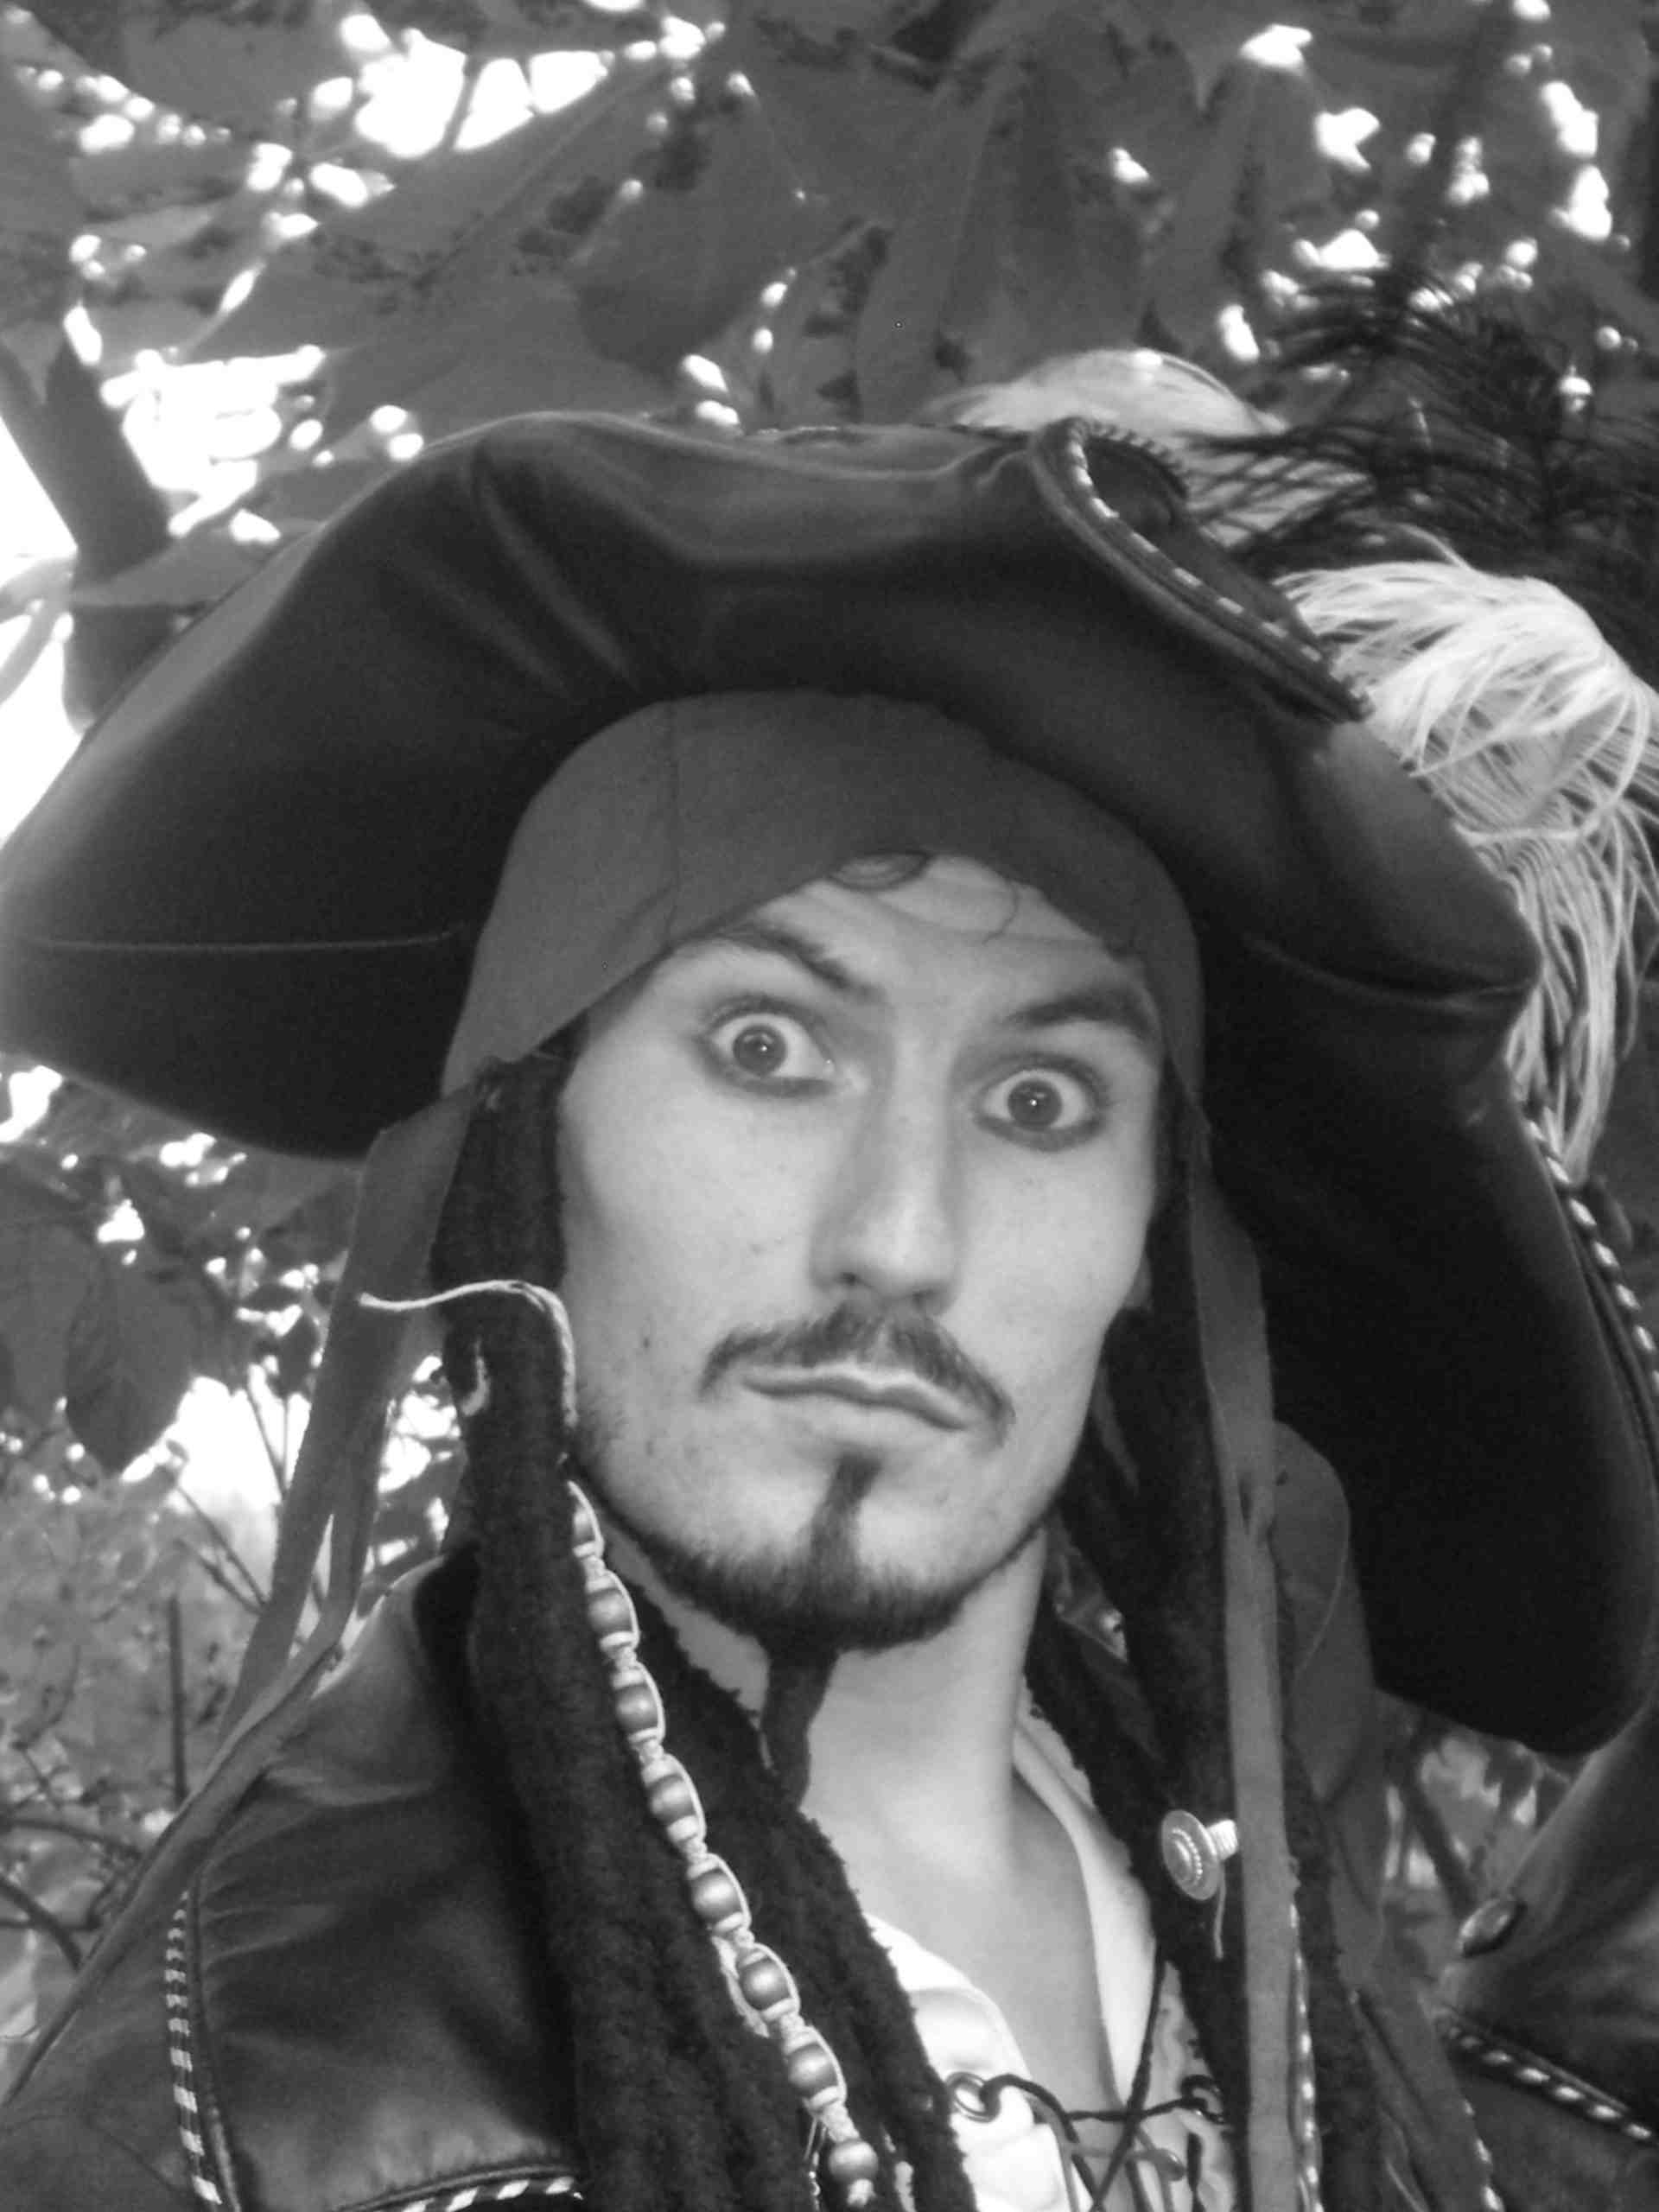 TONY PALMER AS JACK SPARROW 2011